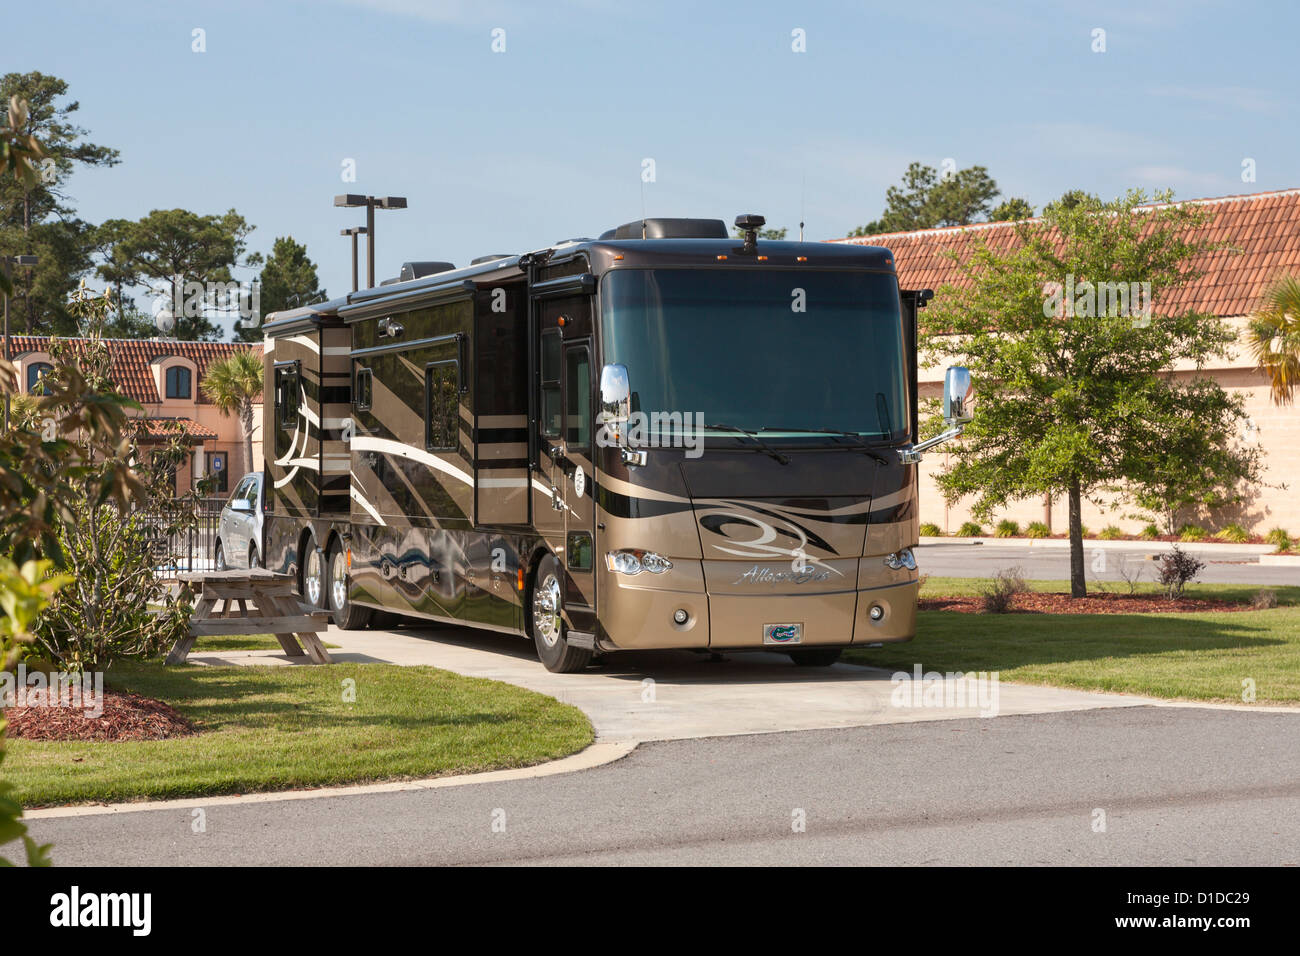 custom luxury rv, most expensive luxury rv, mobile luxury home, top 10 luxury rv, gulf shores luxury rv, on luxury rv mobile home